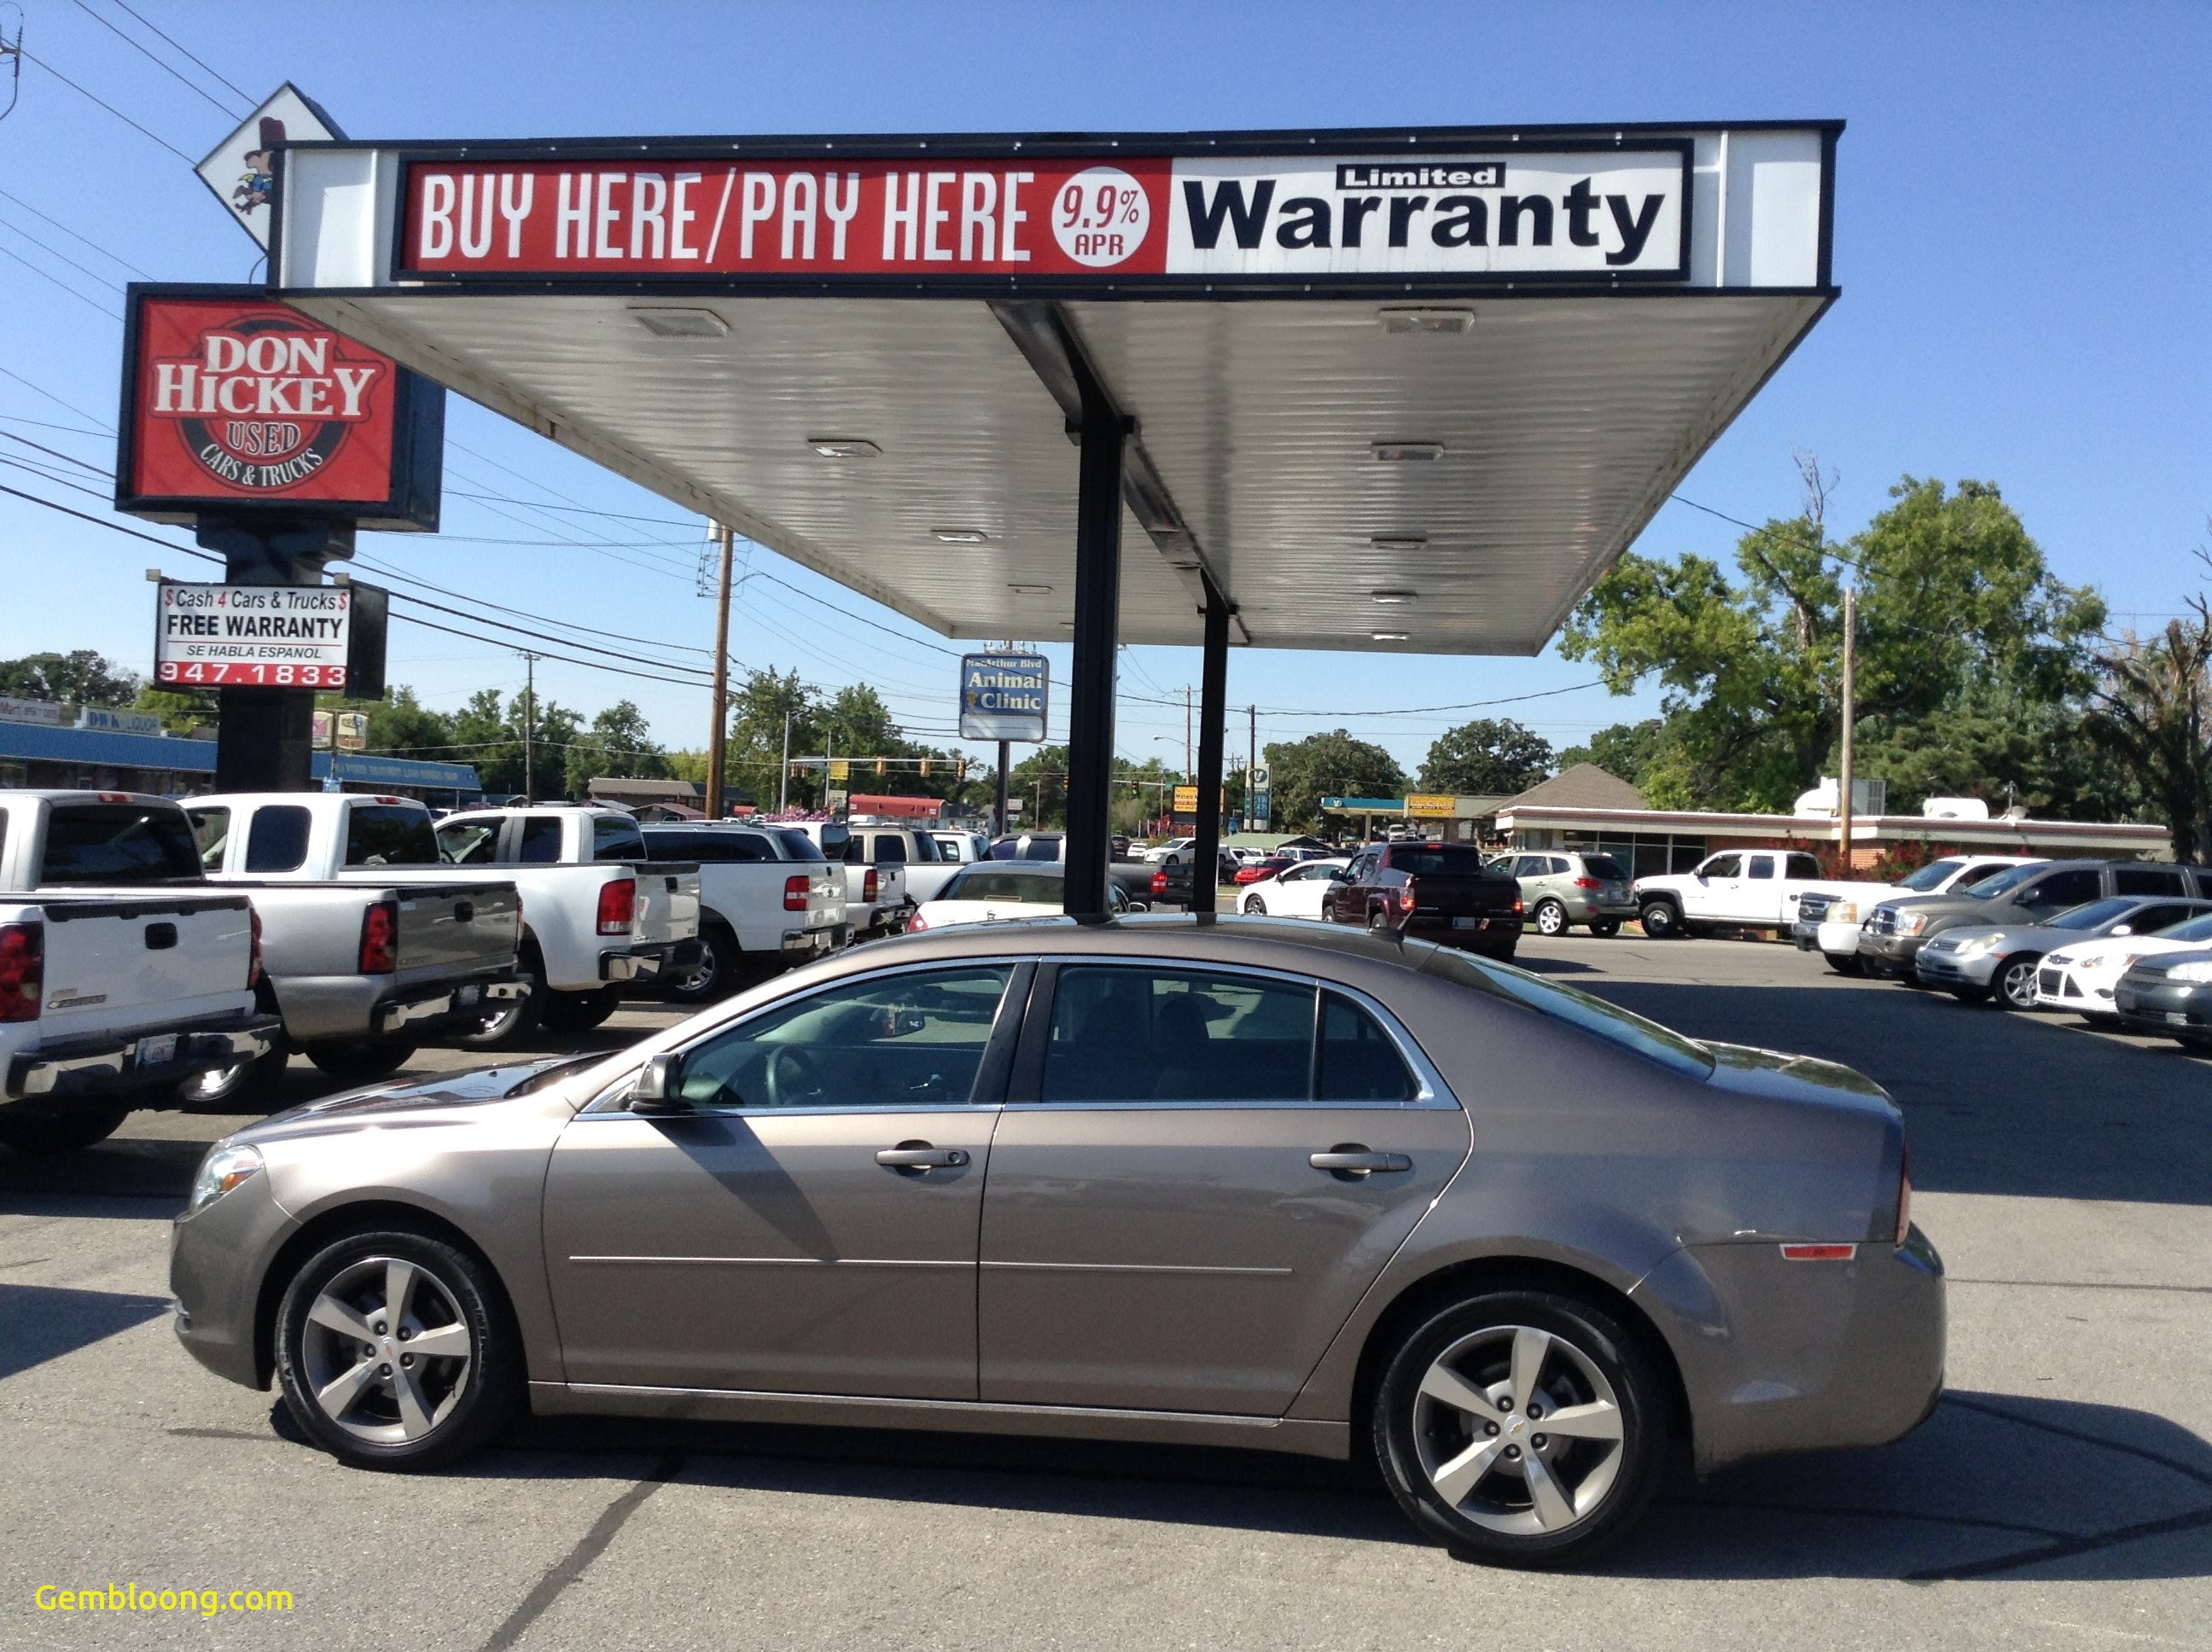 New Cash for Used Cars